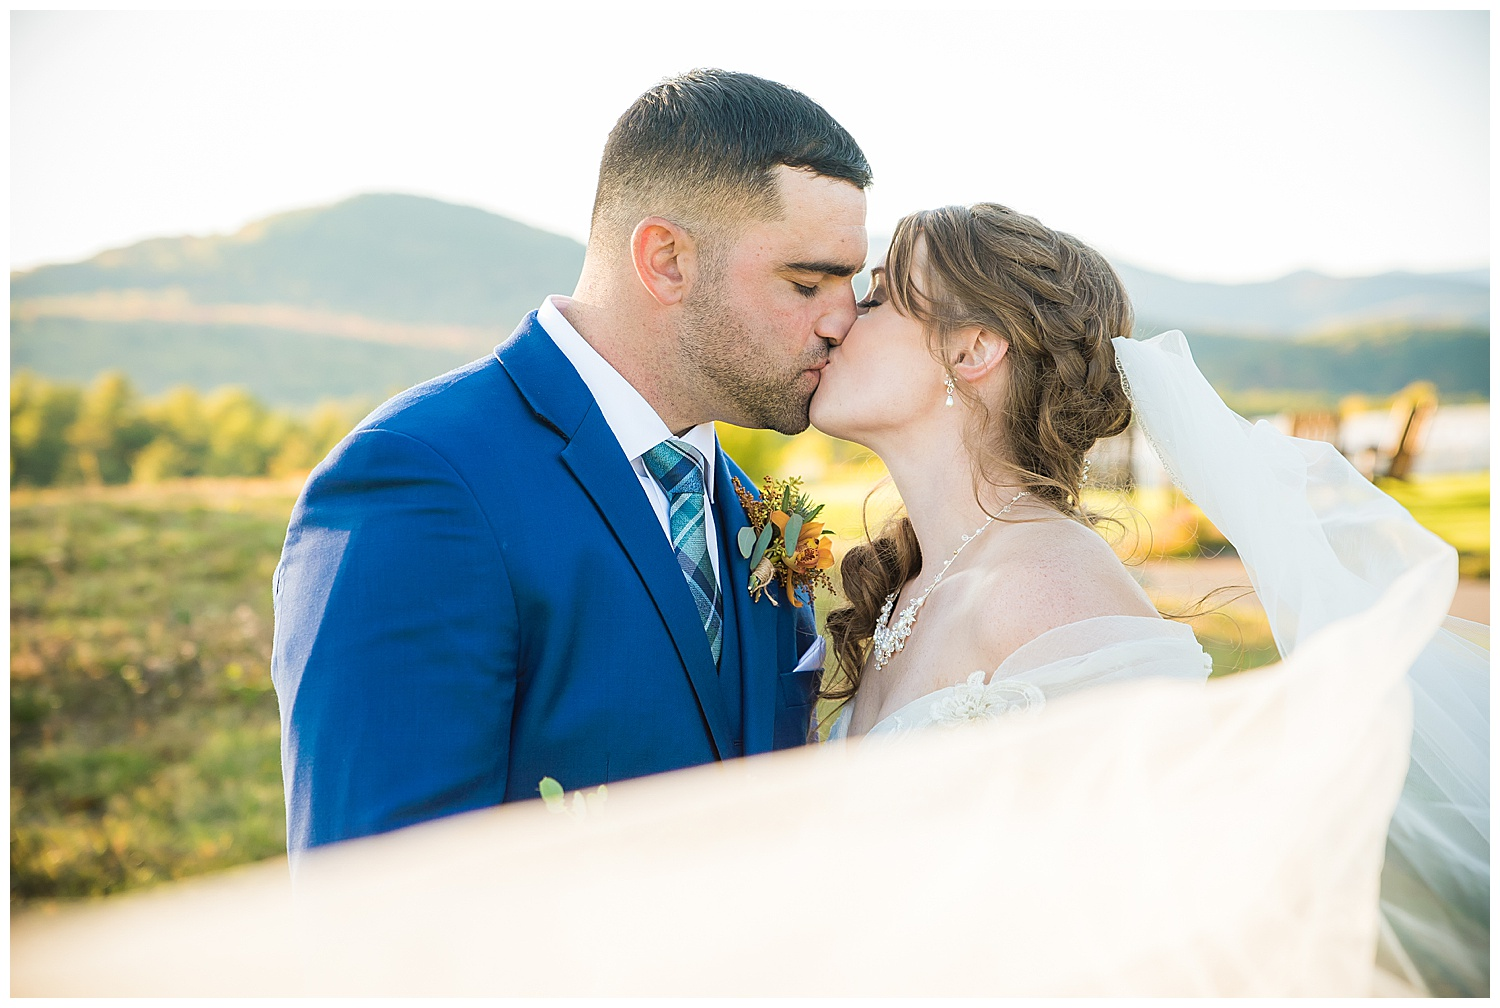 Emily & John – Owl's Nest Wedding in the White Mountains